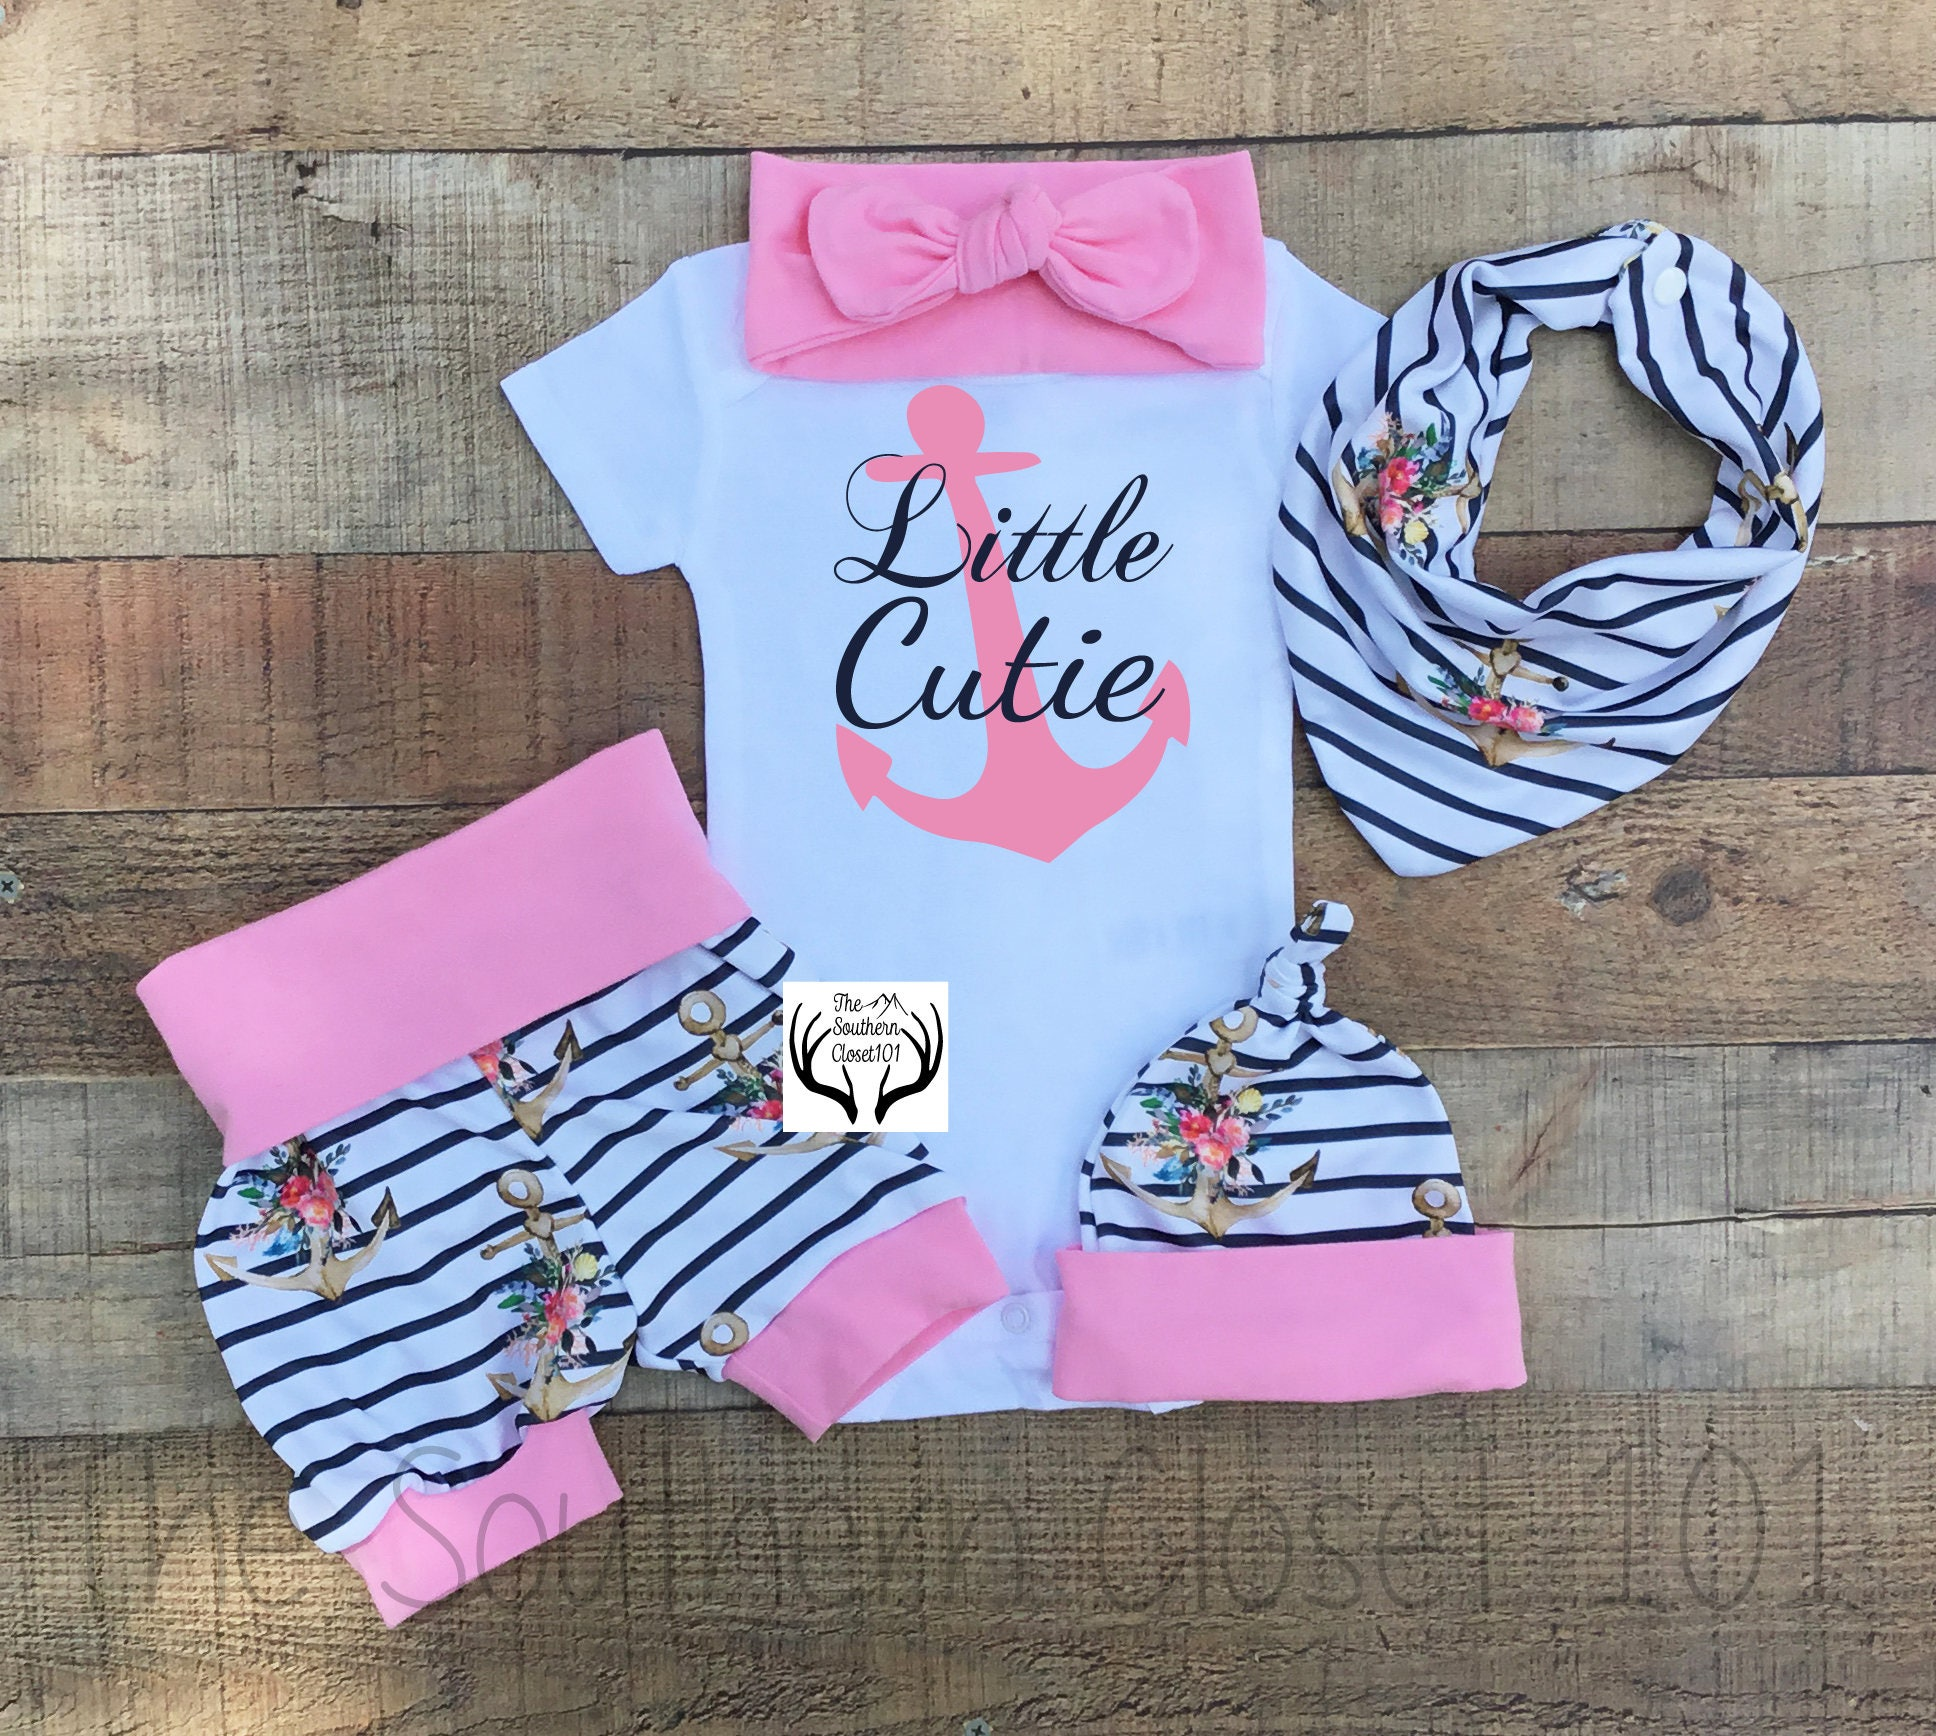 c8effb03340d Newborn Coming Home Outfit Baby Coming Home outfitLittle